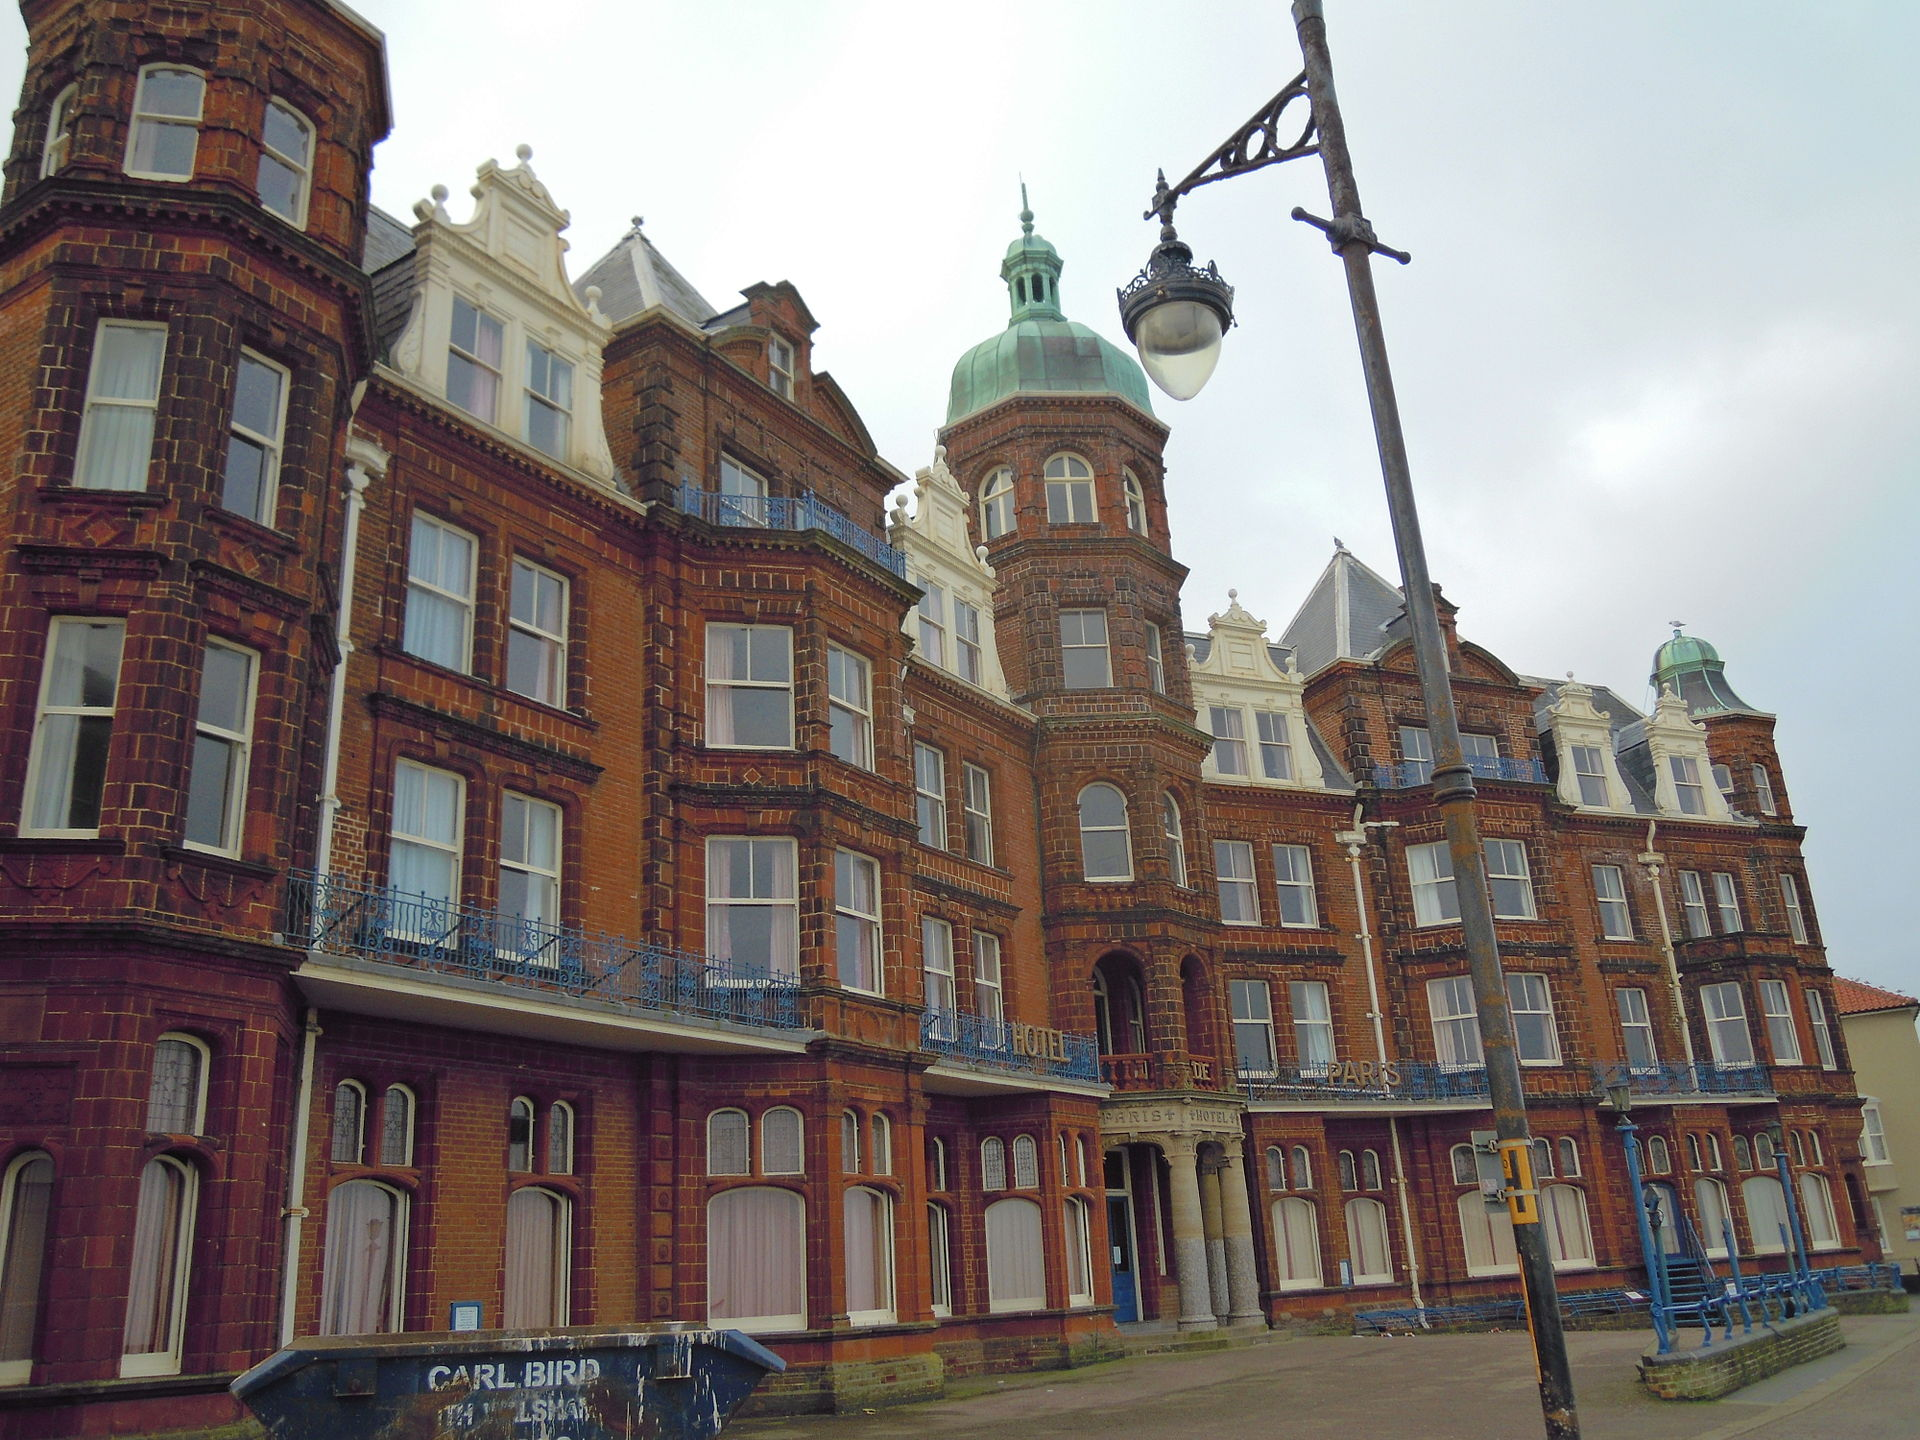 Three Star Hotel In Hotel De Paris, Cromer - Wikipedia